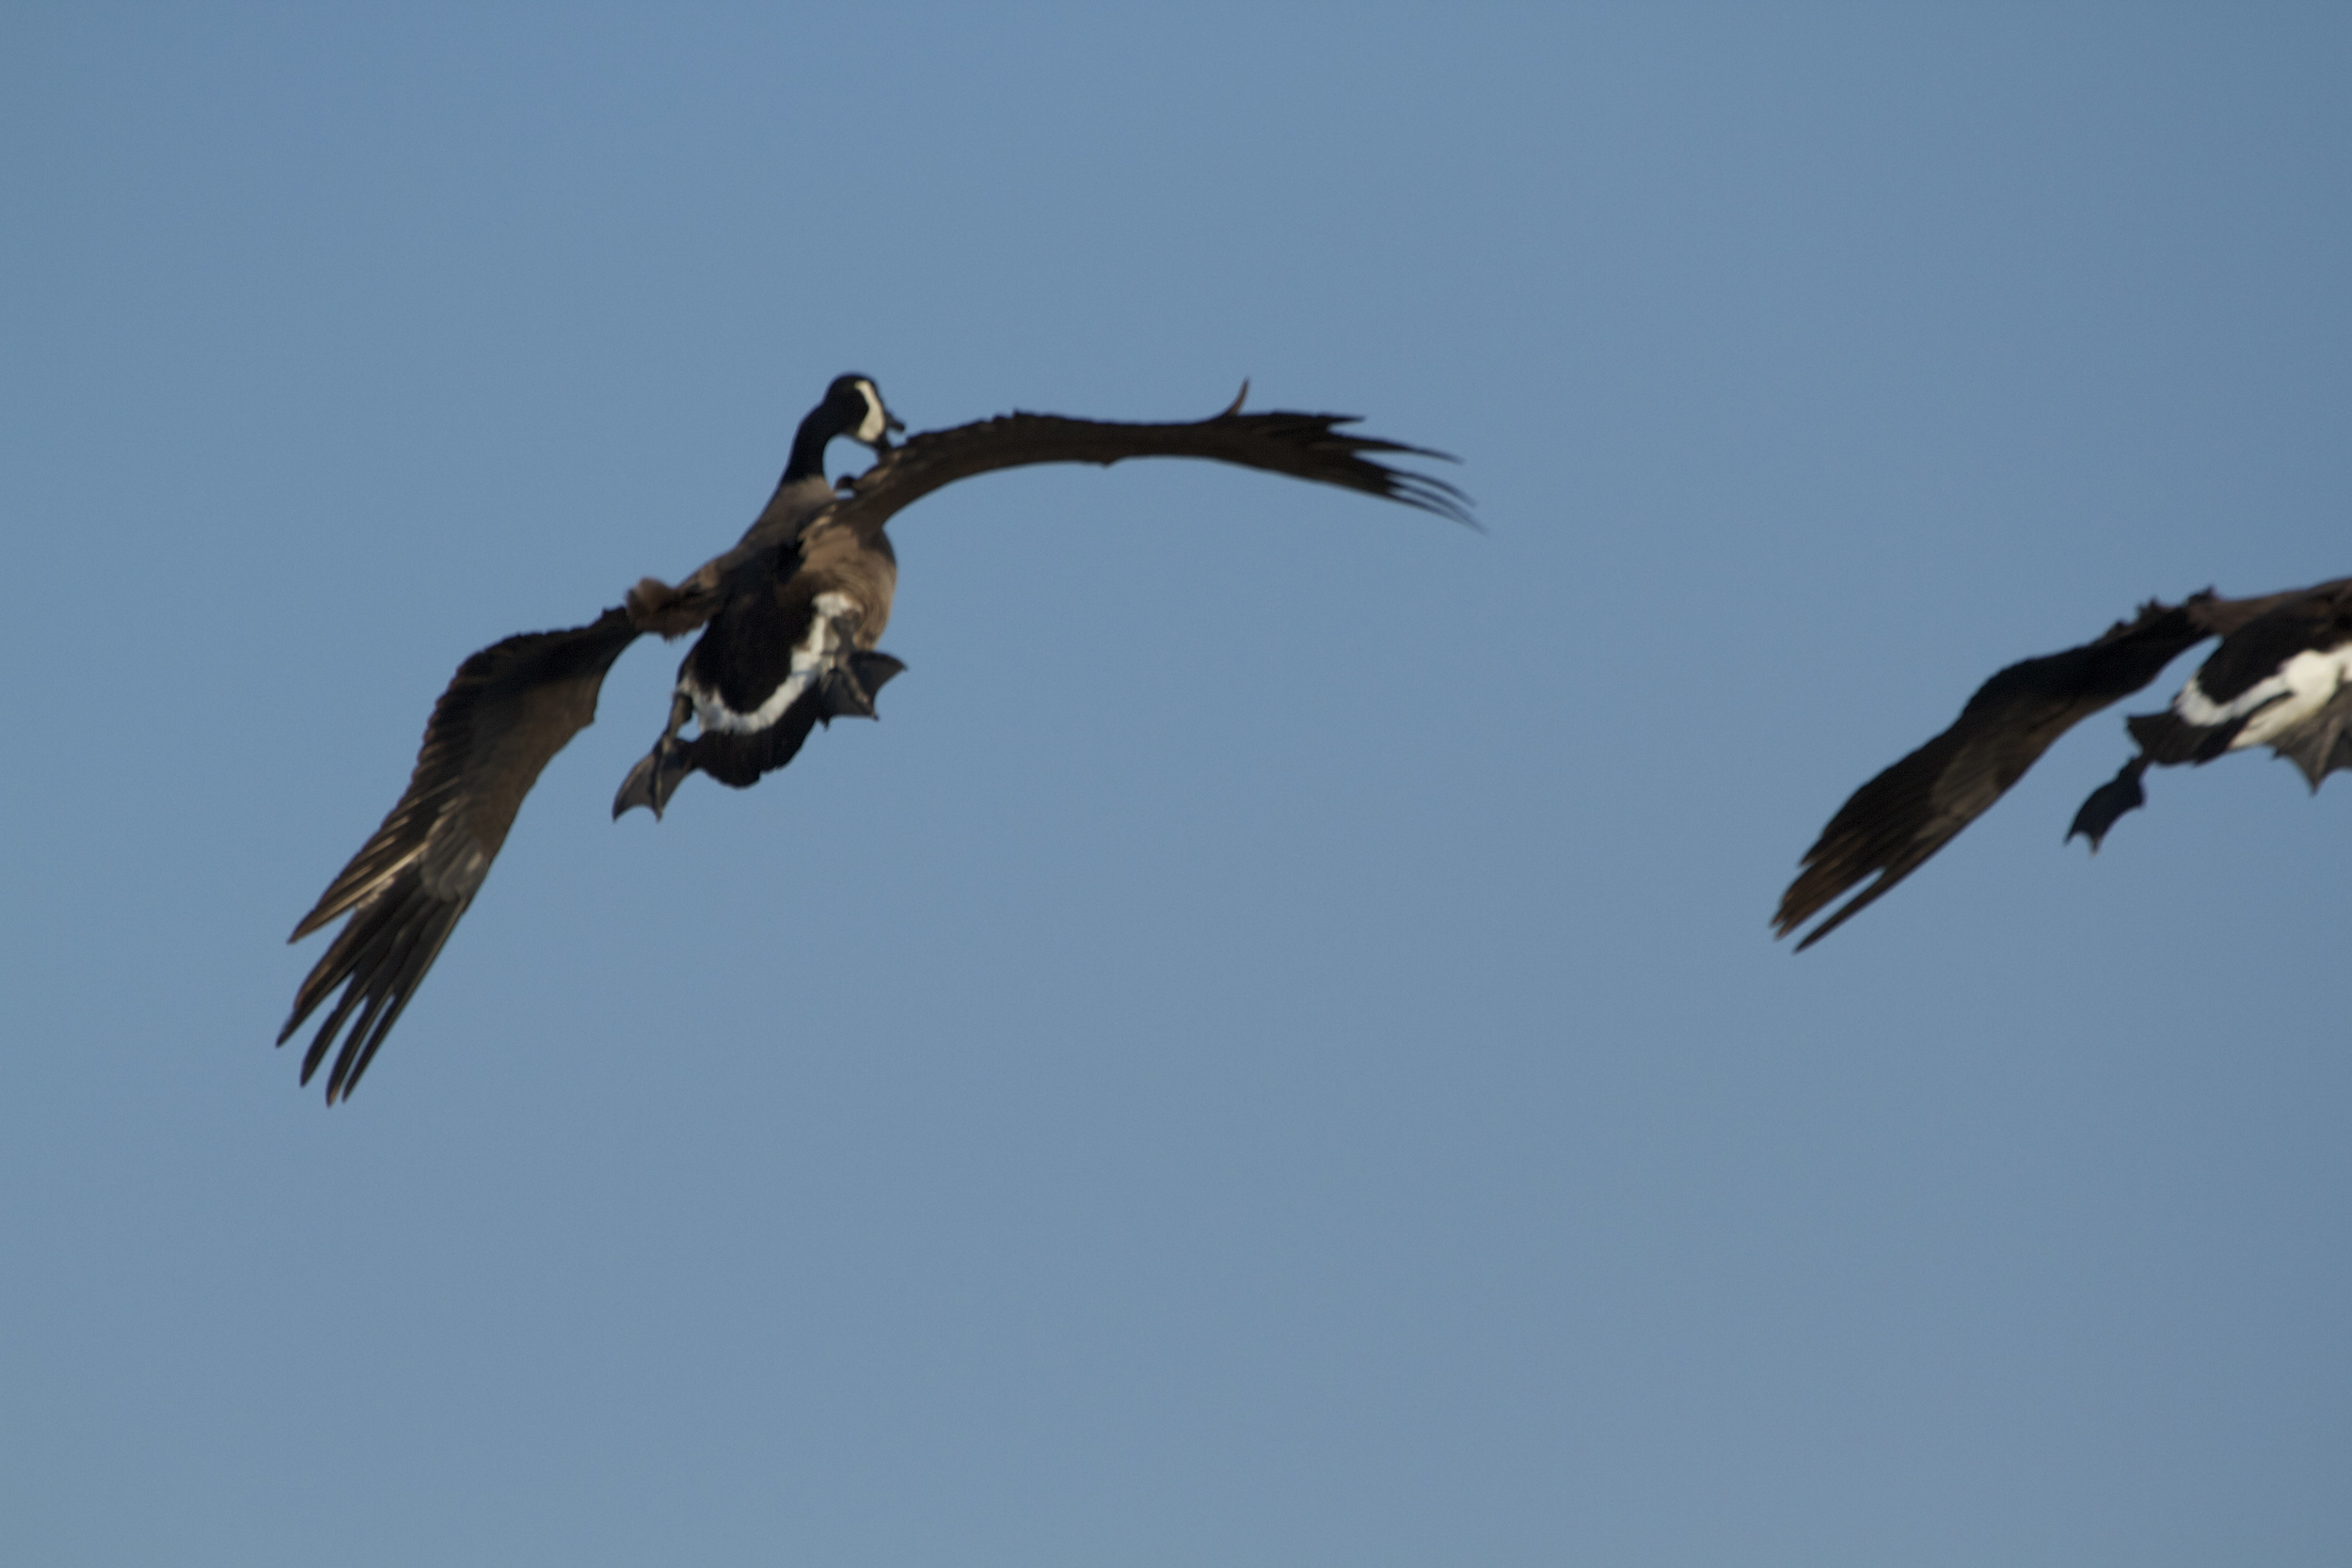 The goose encounters some turbulence and adjusts..